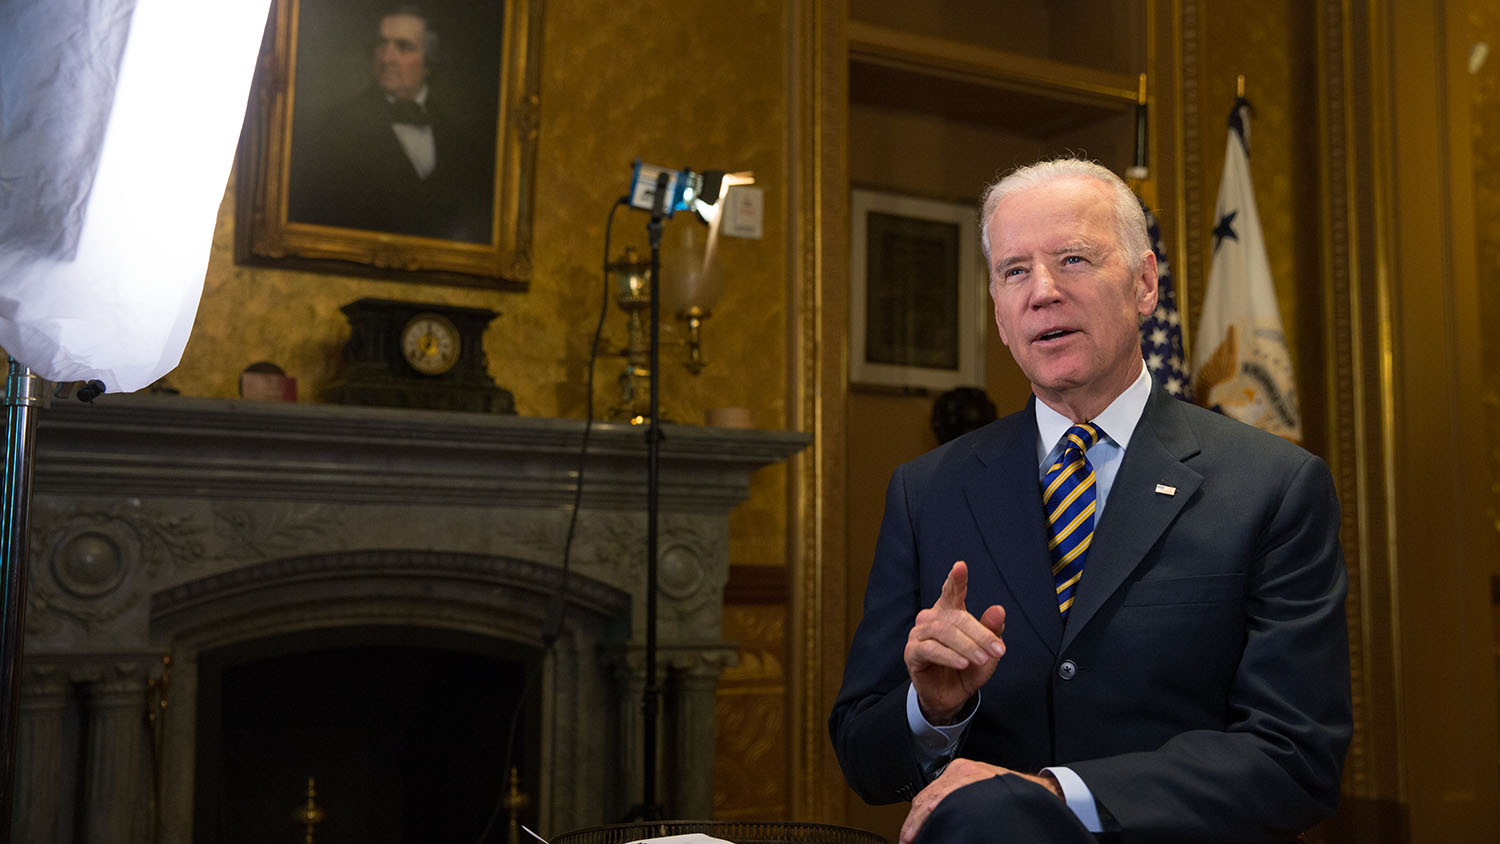 Vice President Joe Biden Delivers the Weekly Address